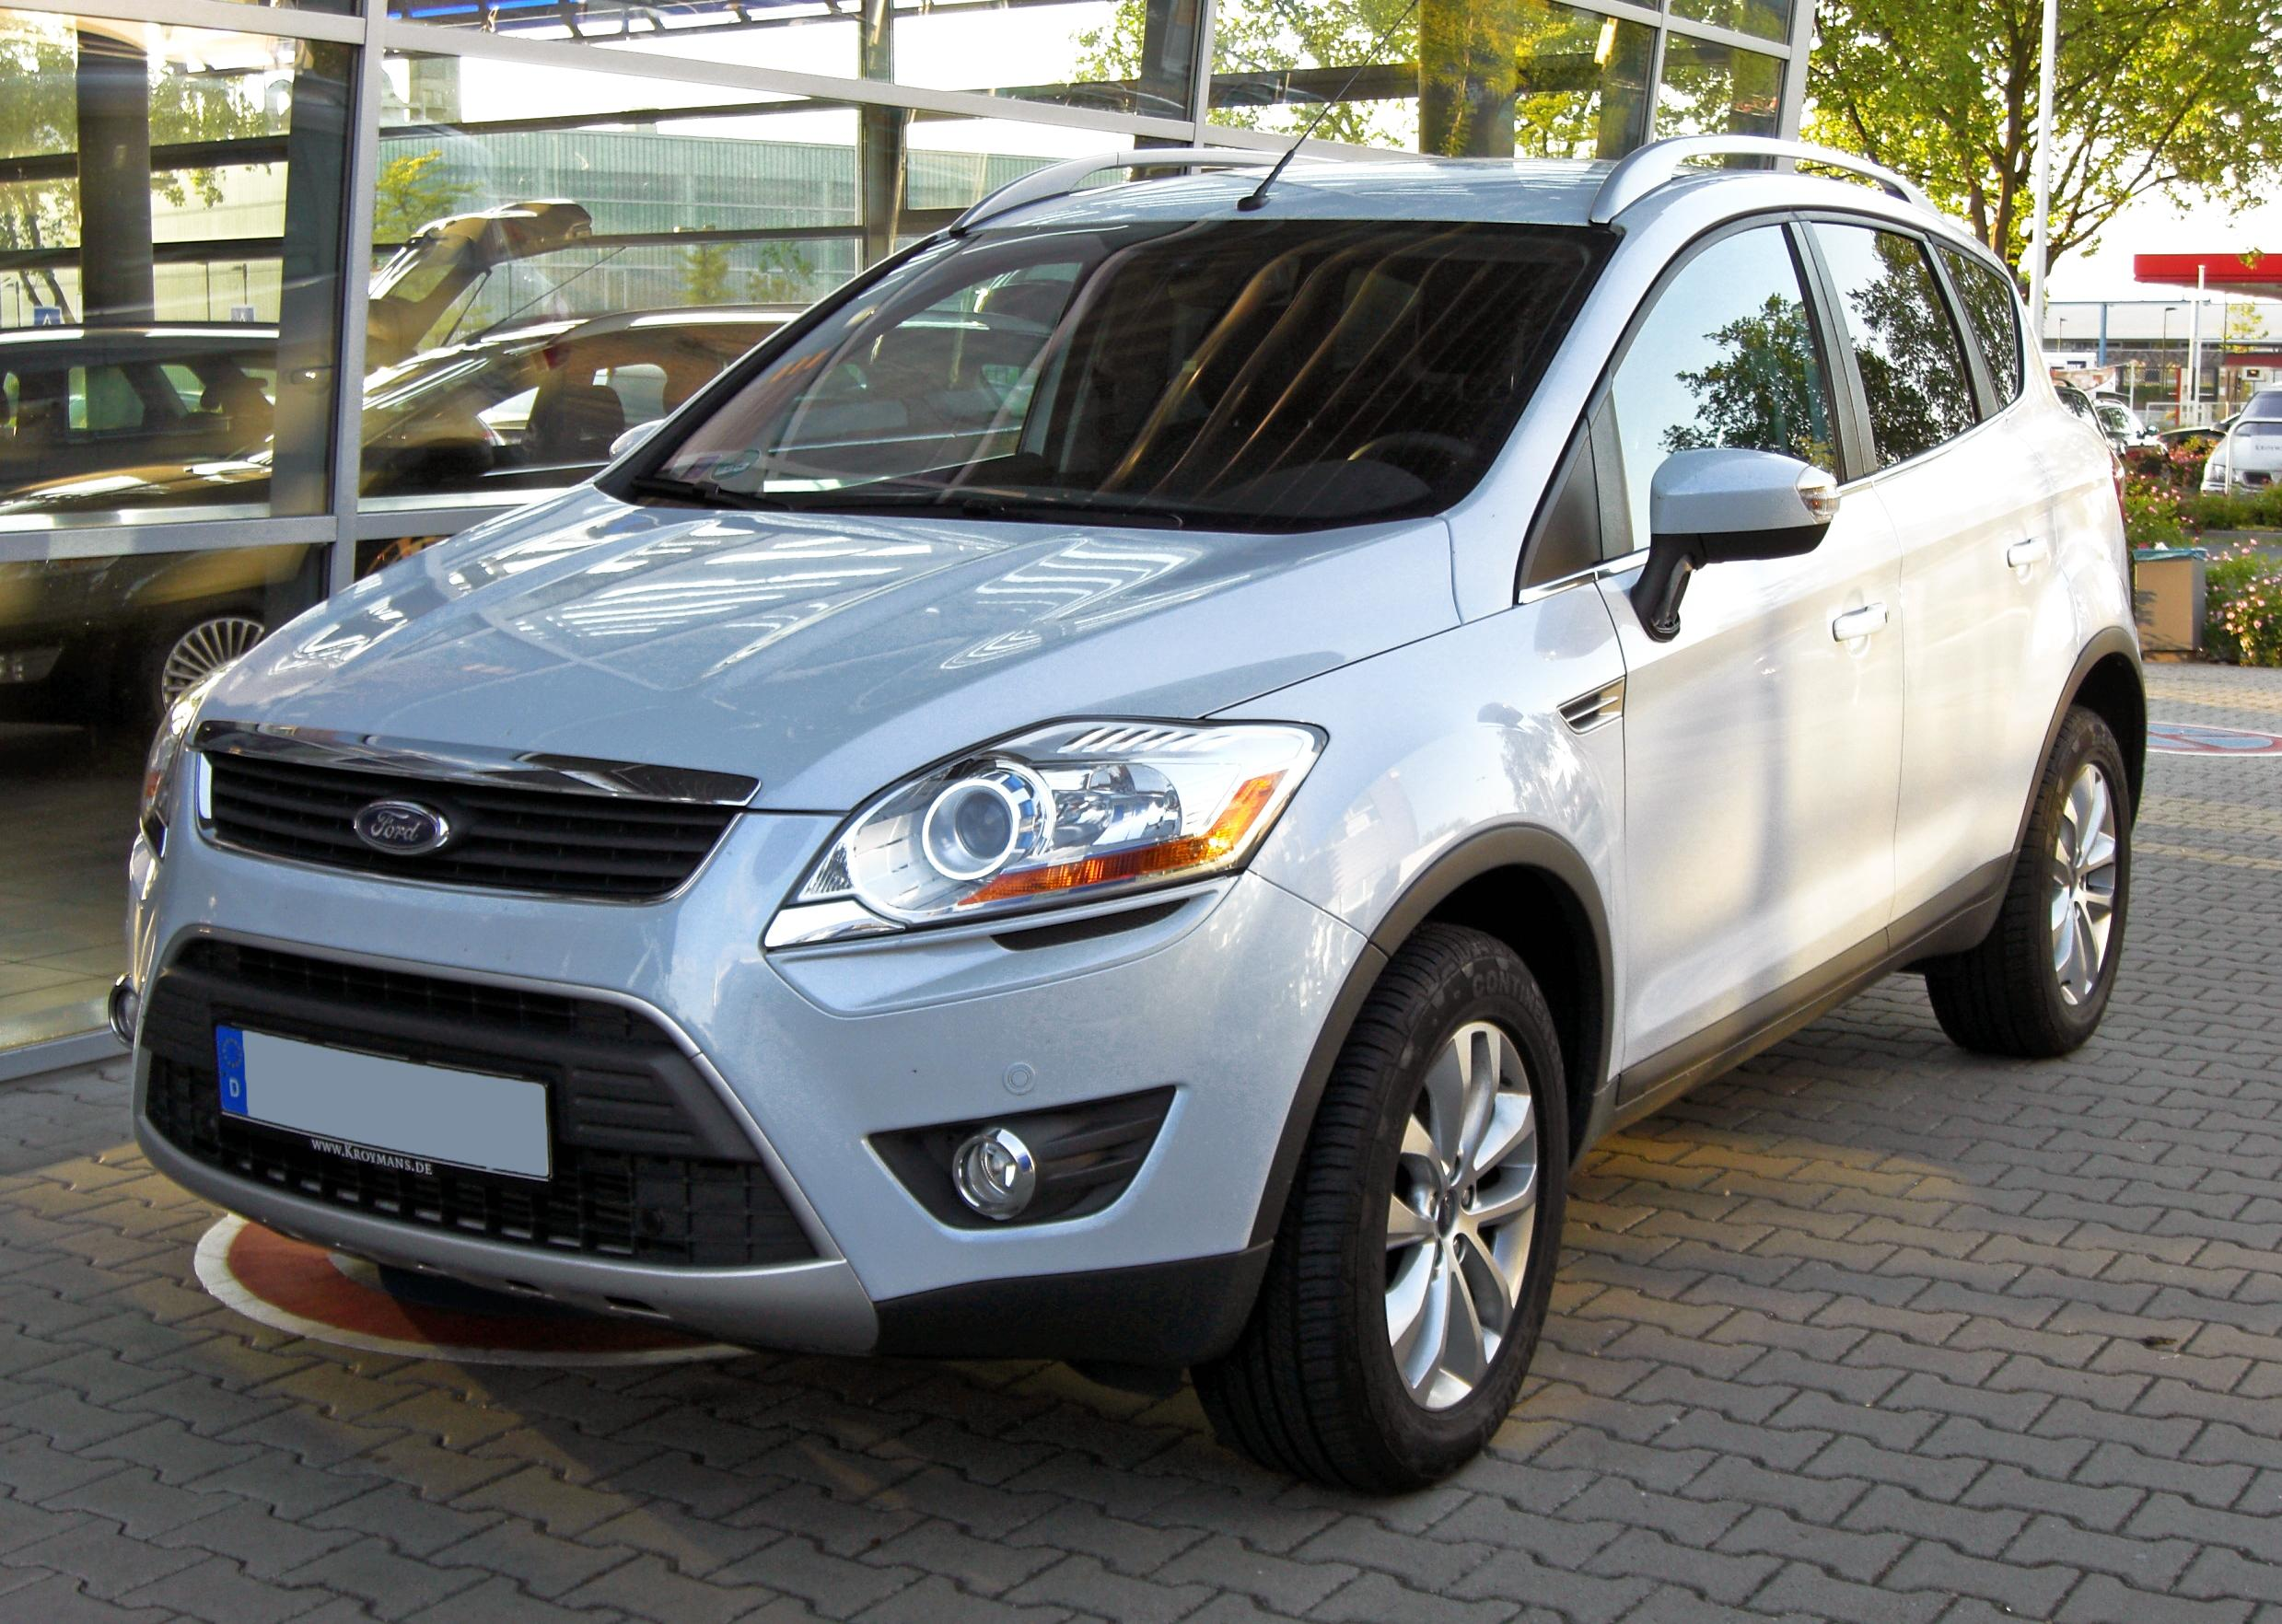 ford kuga 2009 review amazing pictures and images look at the car. Black Bedroom Furniture Sets. Home Design Ideas